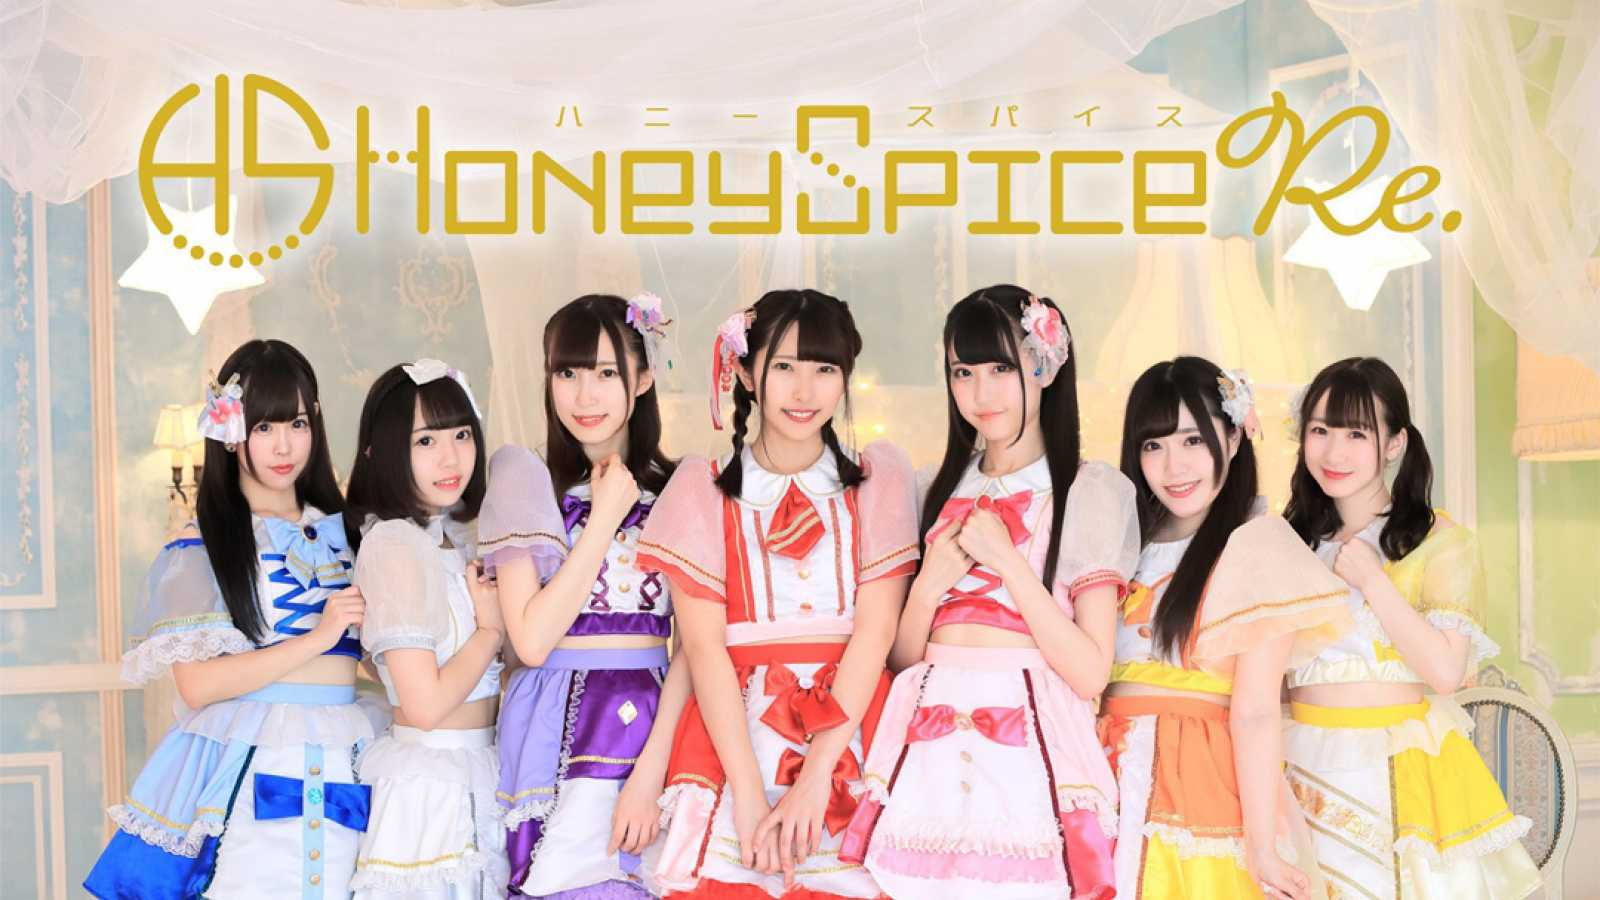 Honey Spice Re. © Honey Spice Re.